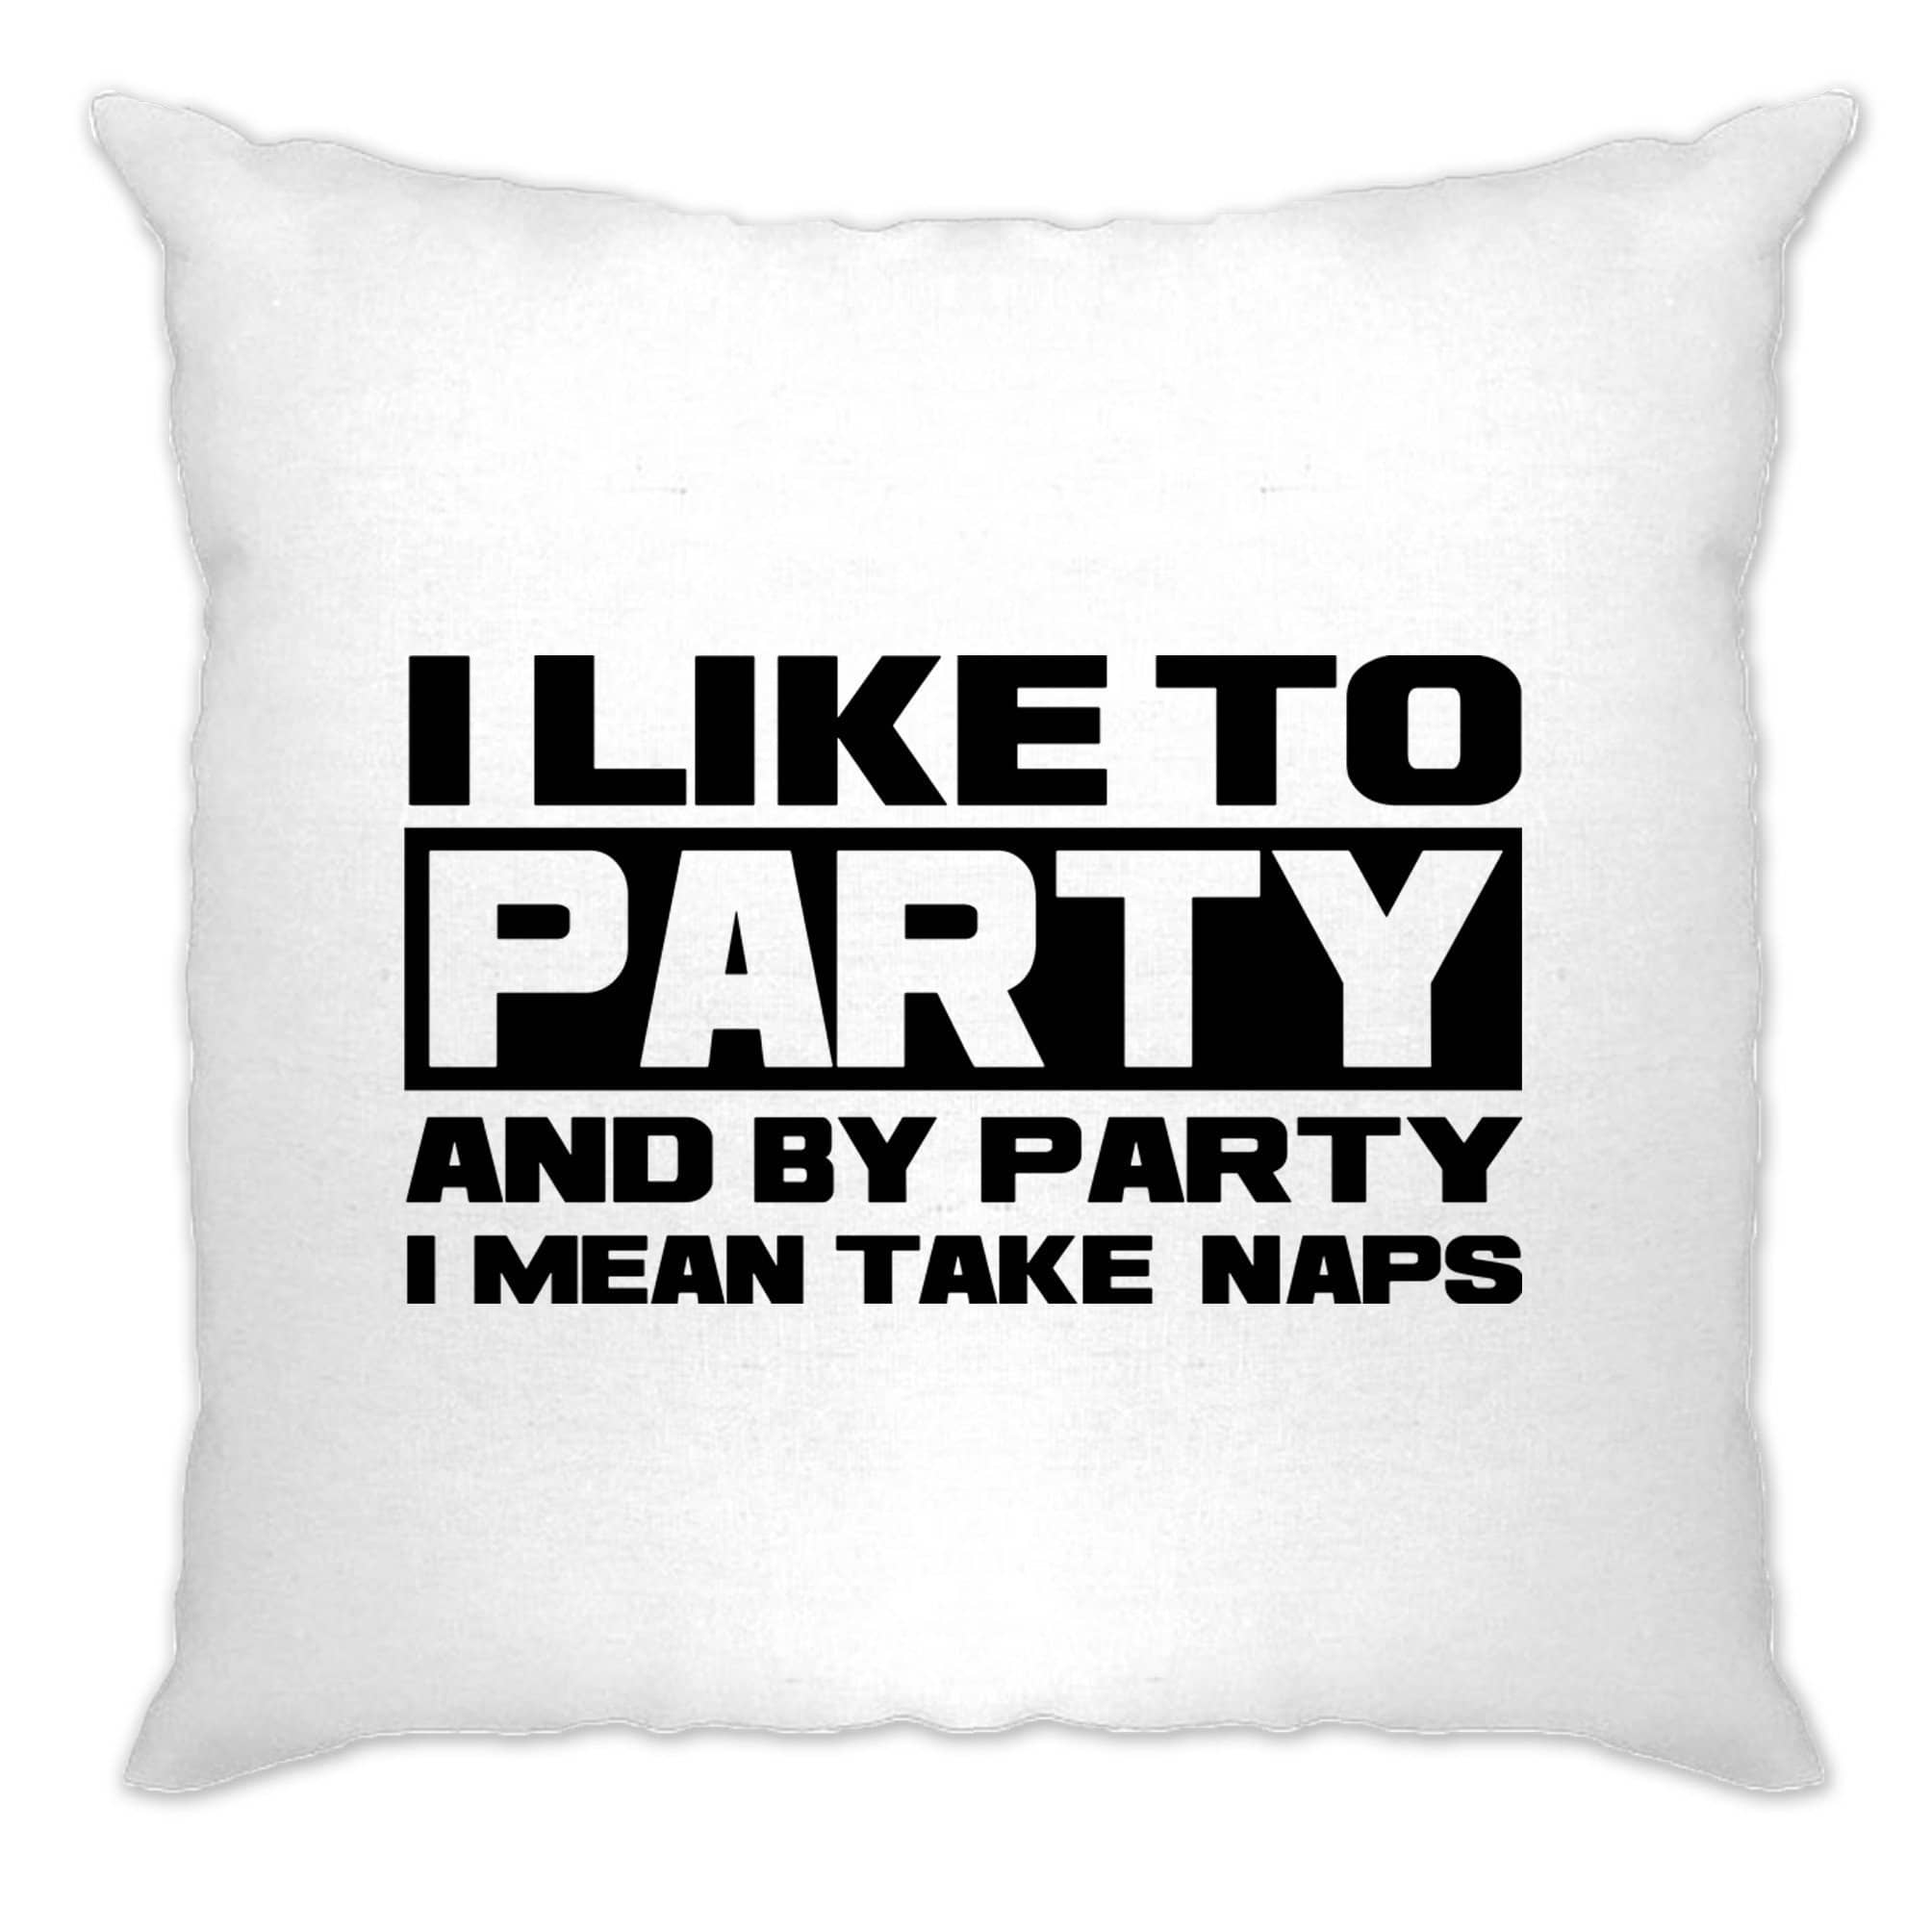 Novelty Cushion Cover I Like To Party, I Mean Take Naps